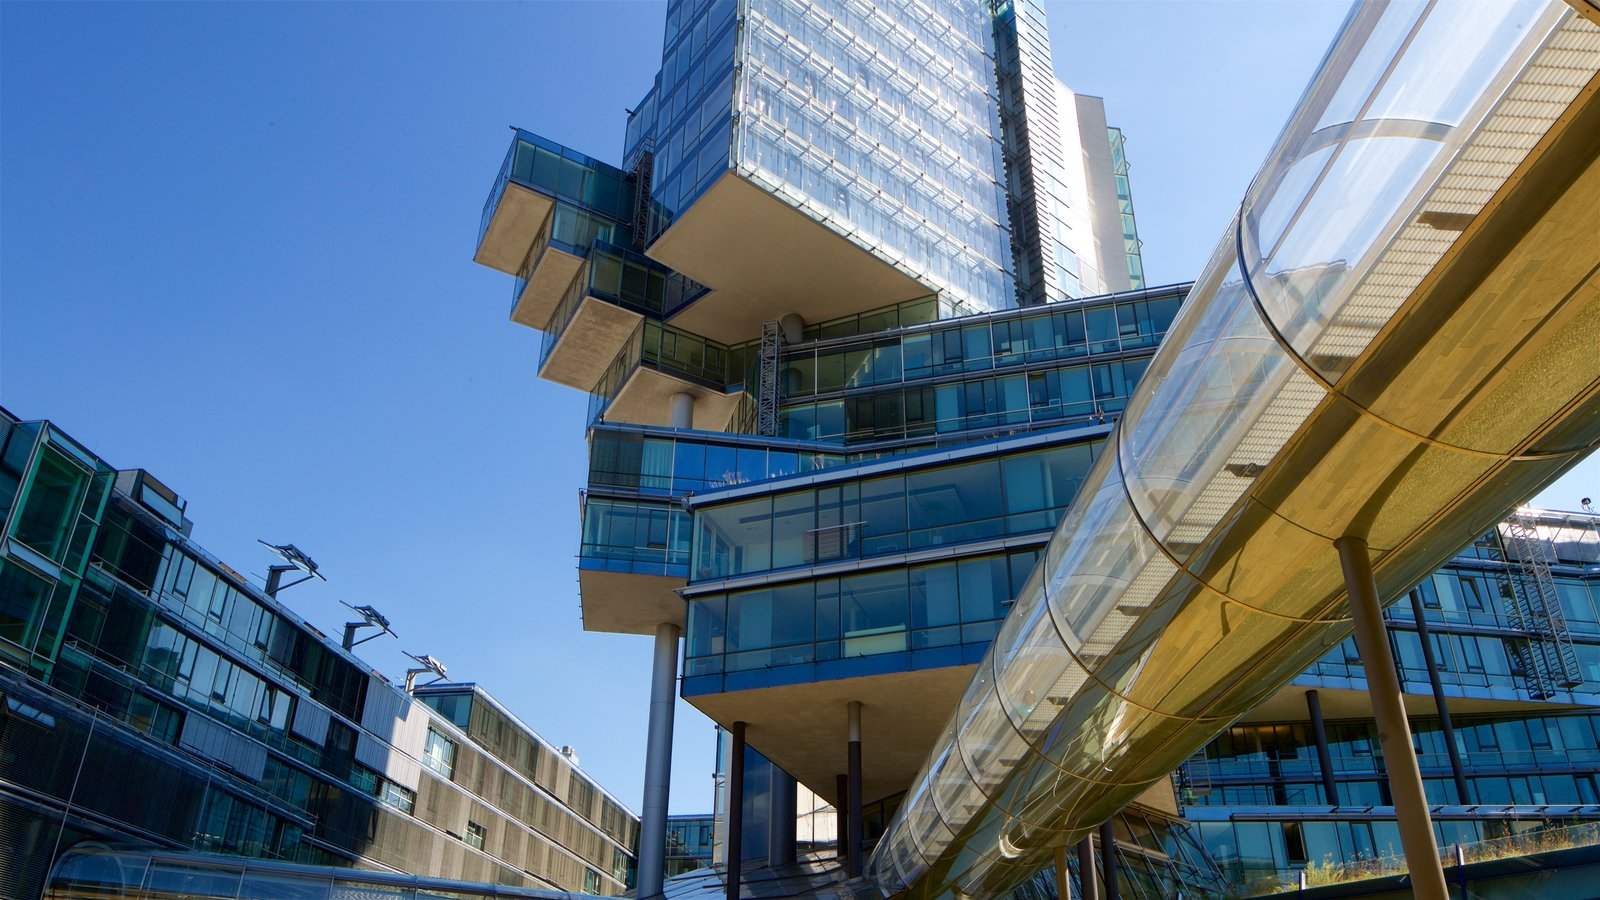 Lower Saxony - Bremen featuring a city and modern architecture